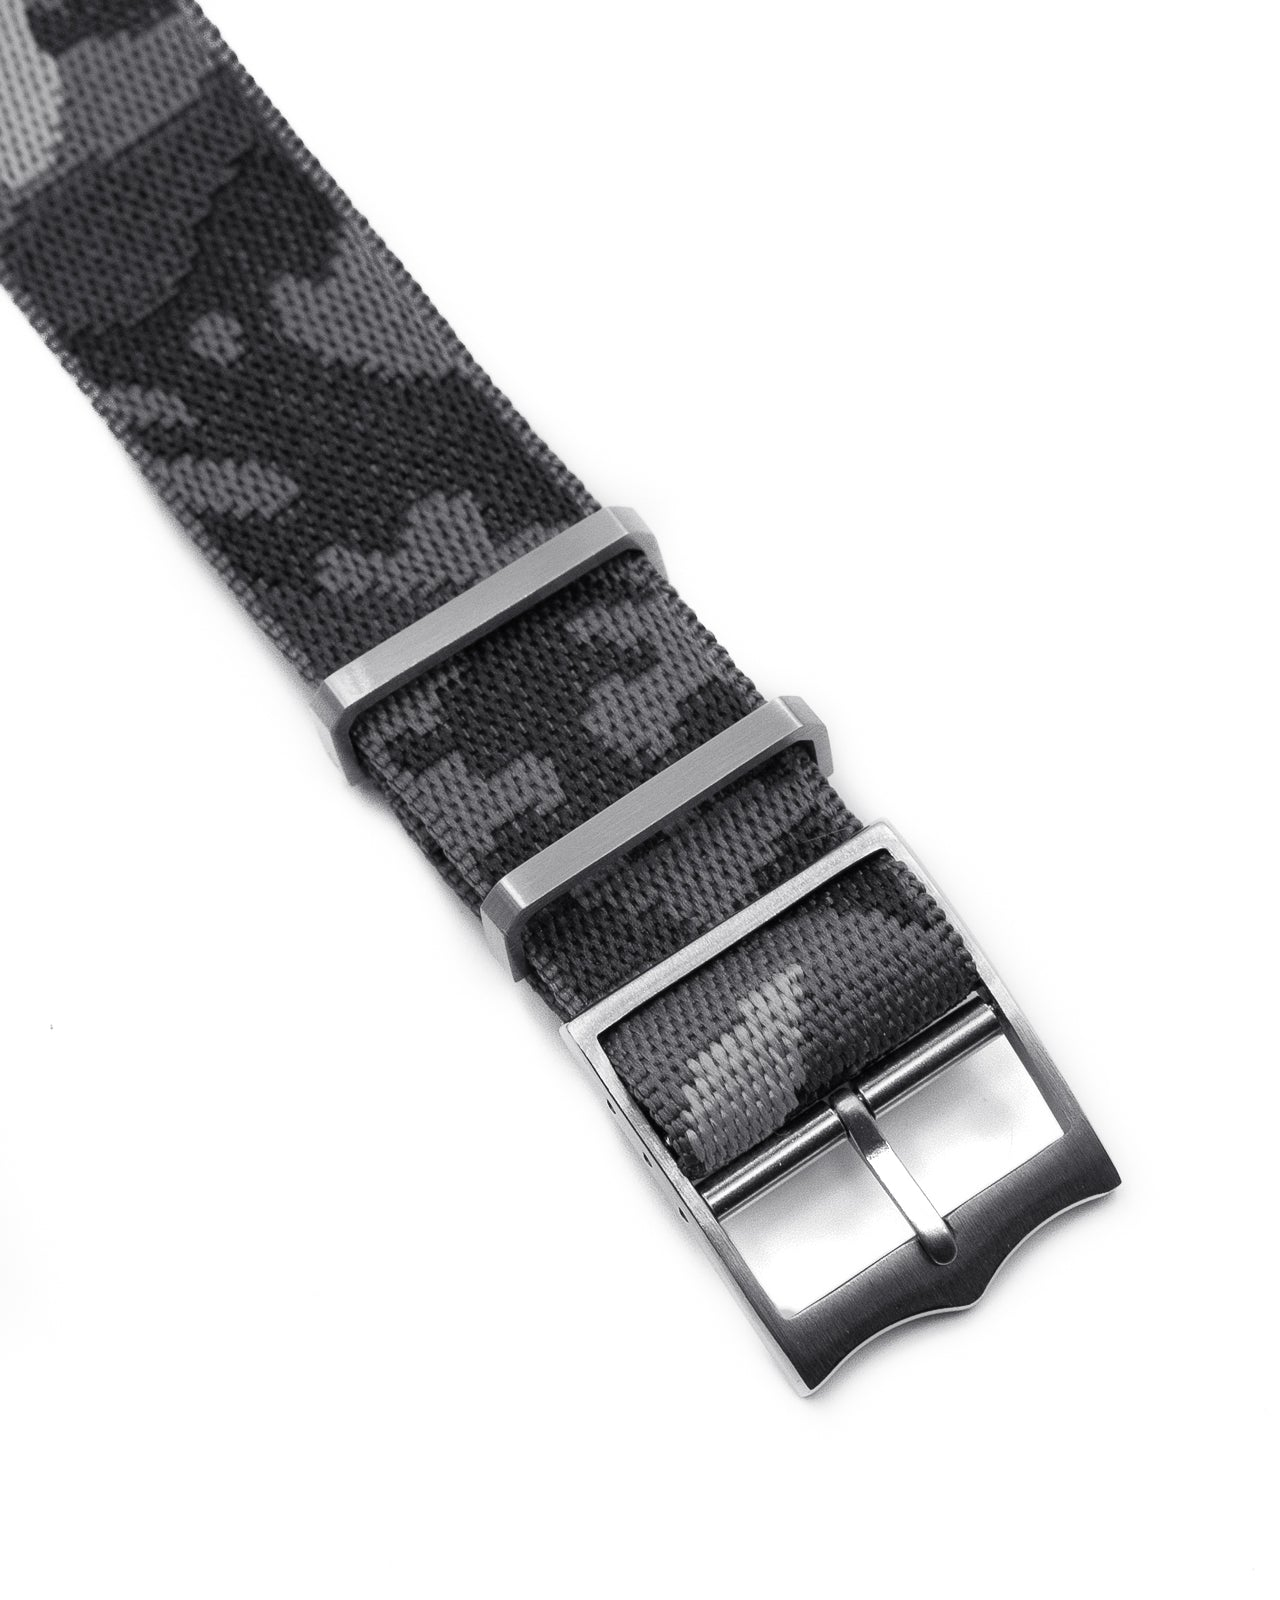 Blackbay Adjustable III - Woven Arctic Camo